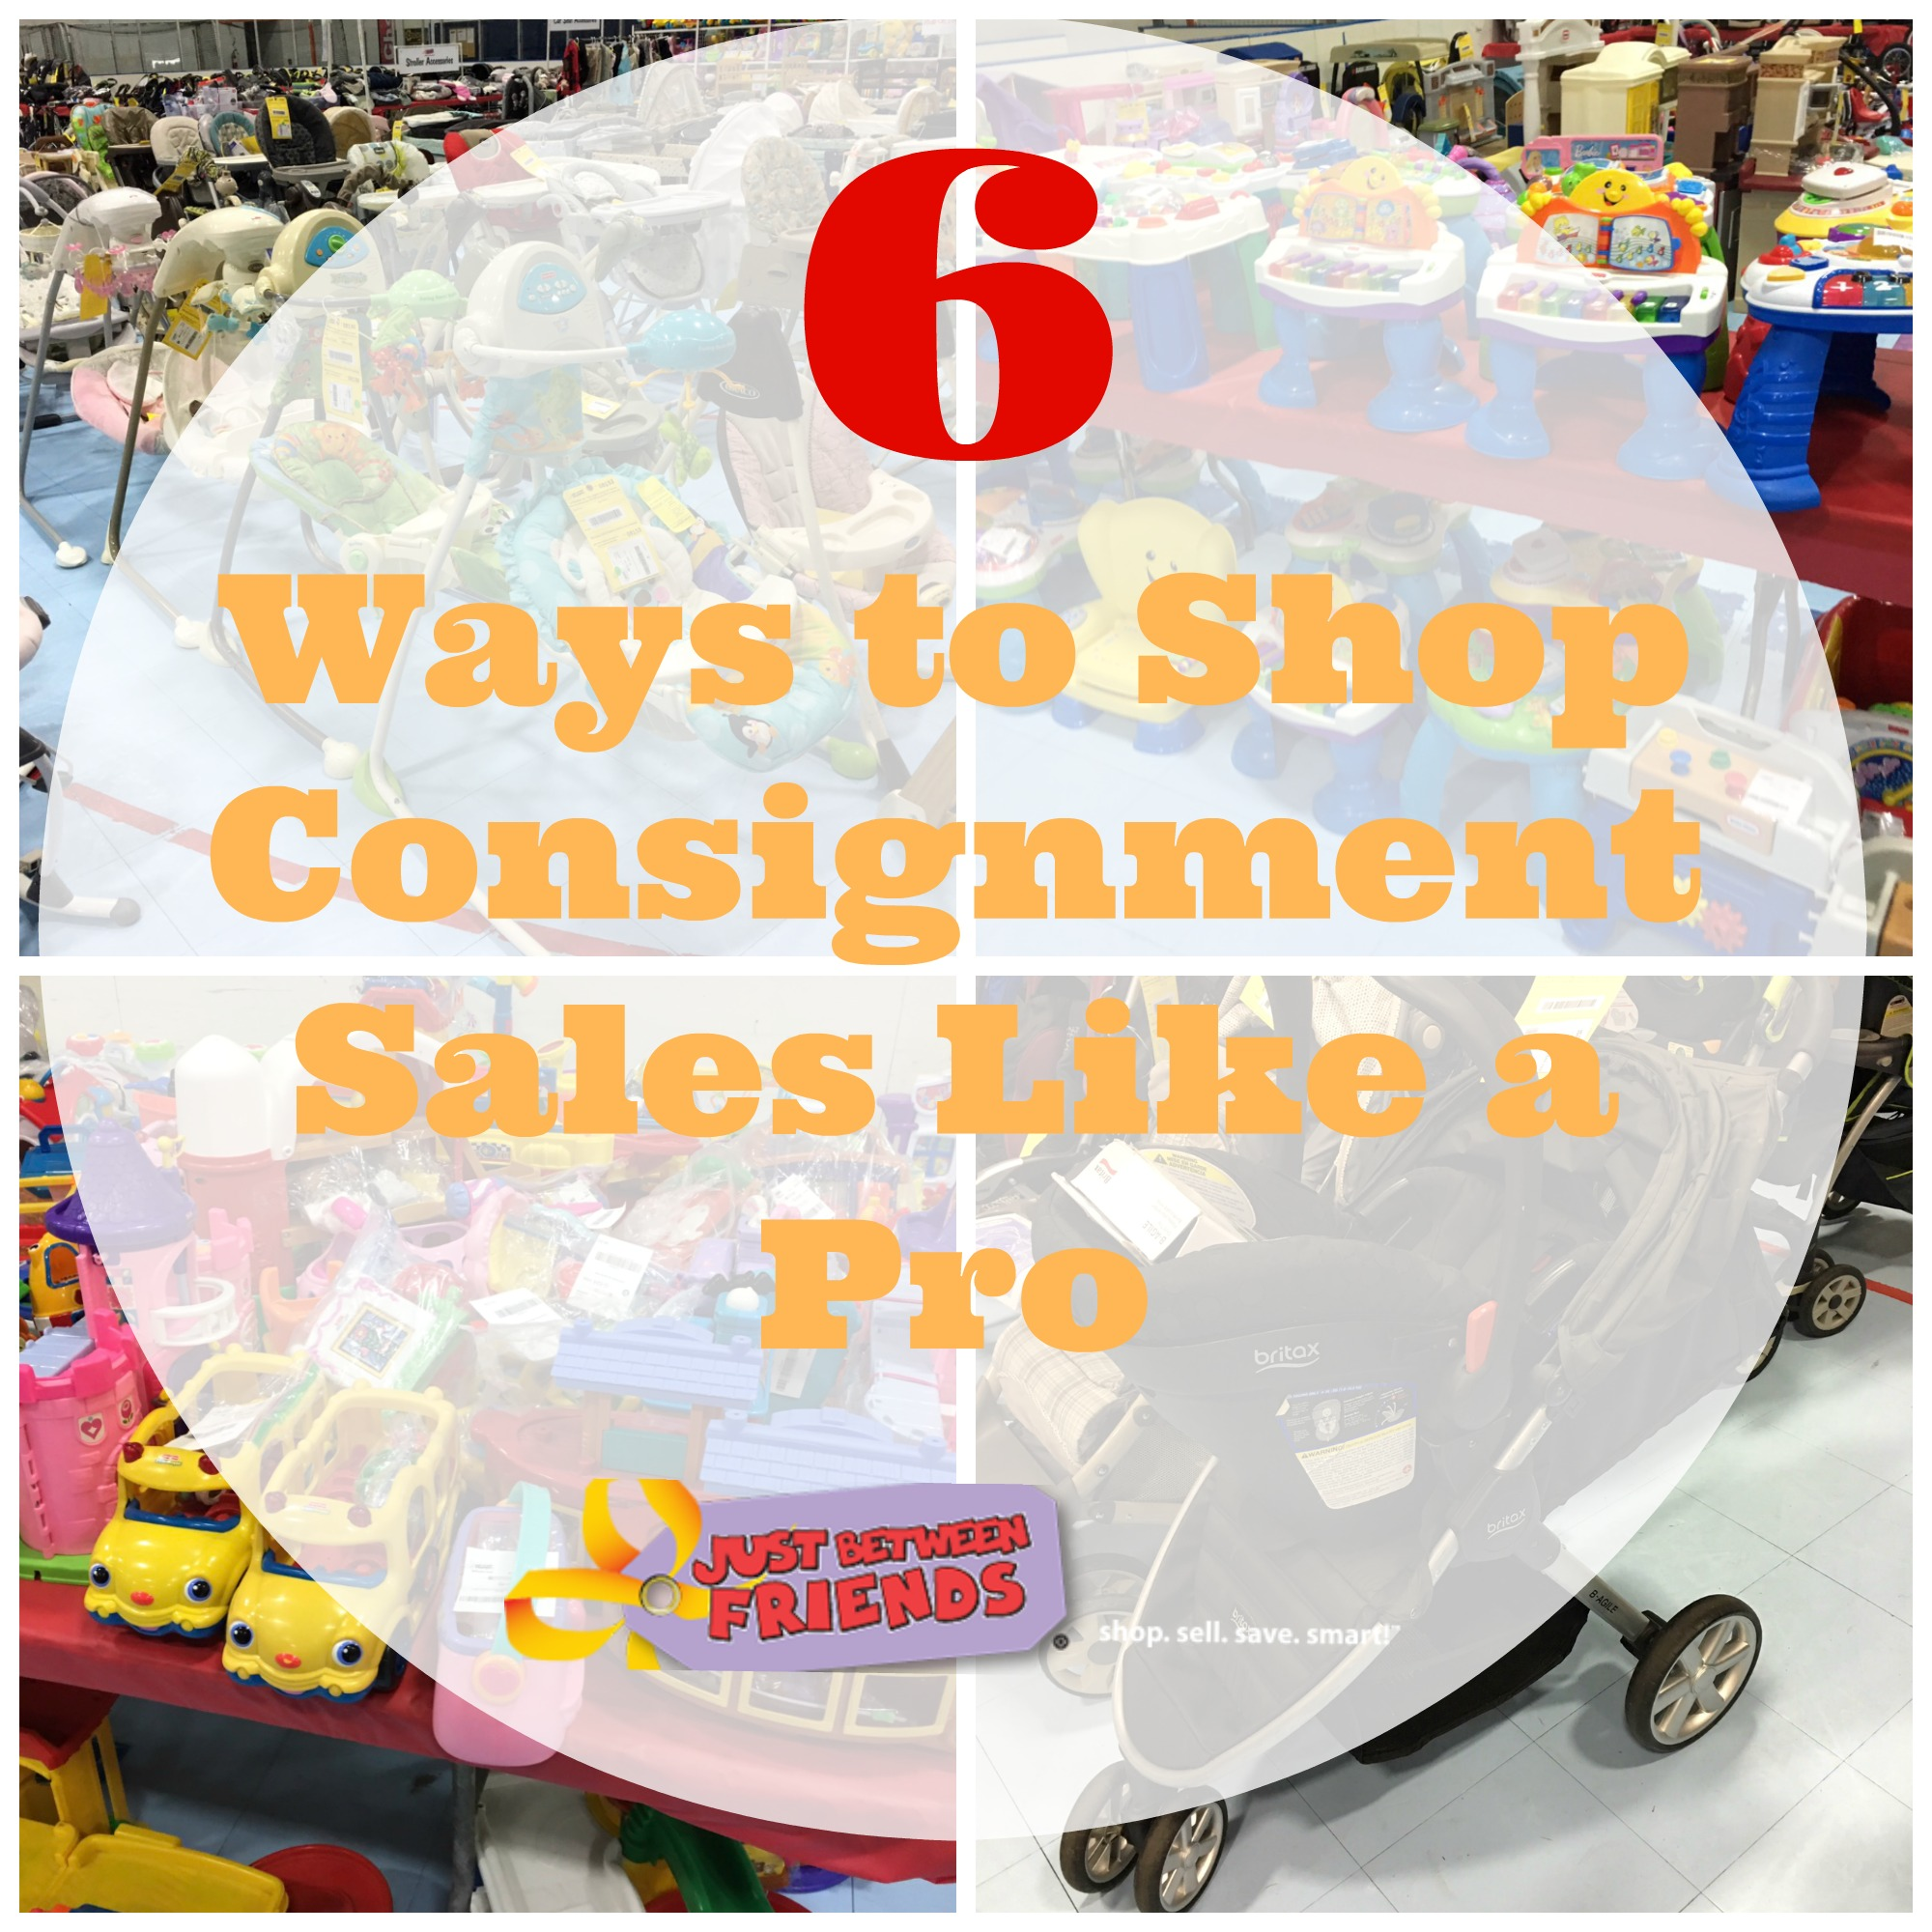 6 Ways to Shop Consignment Sales Like a Pro